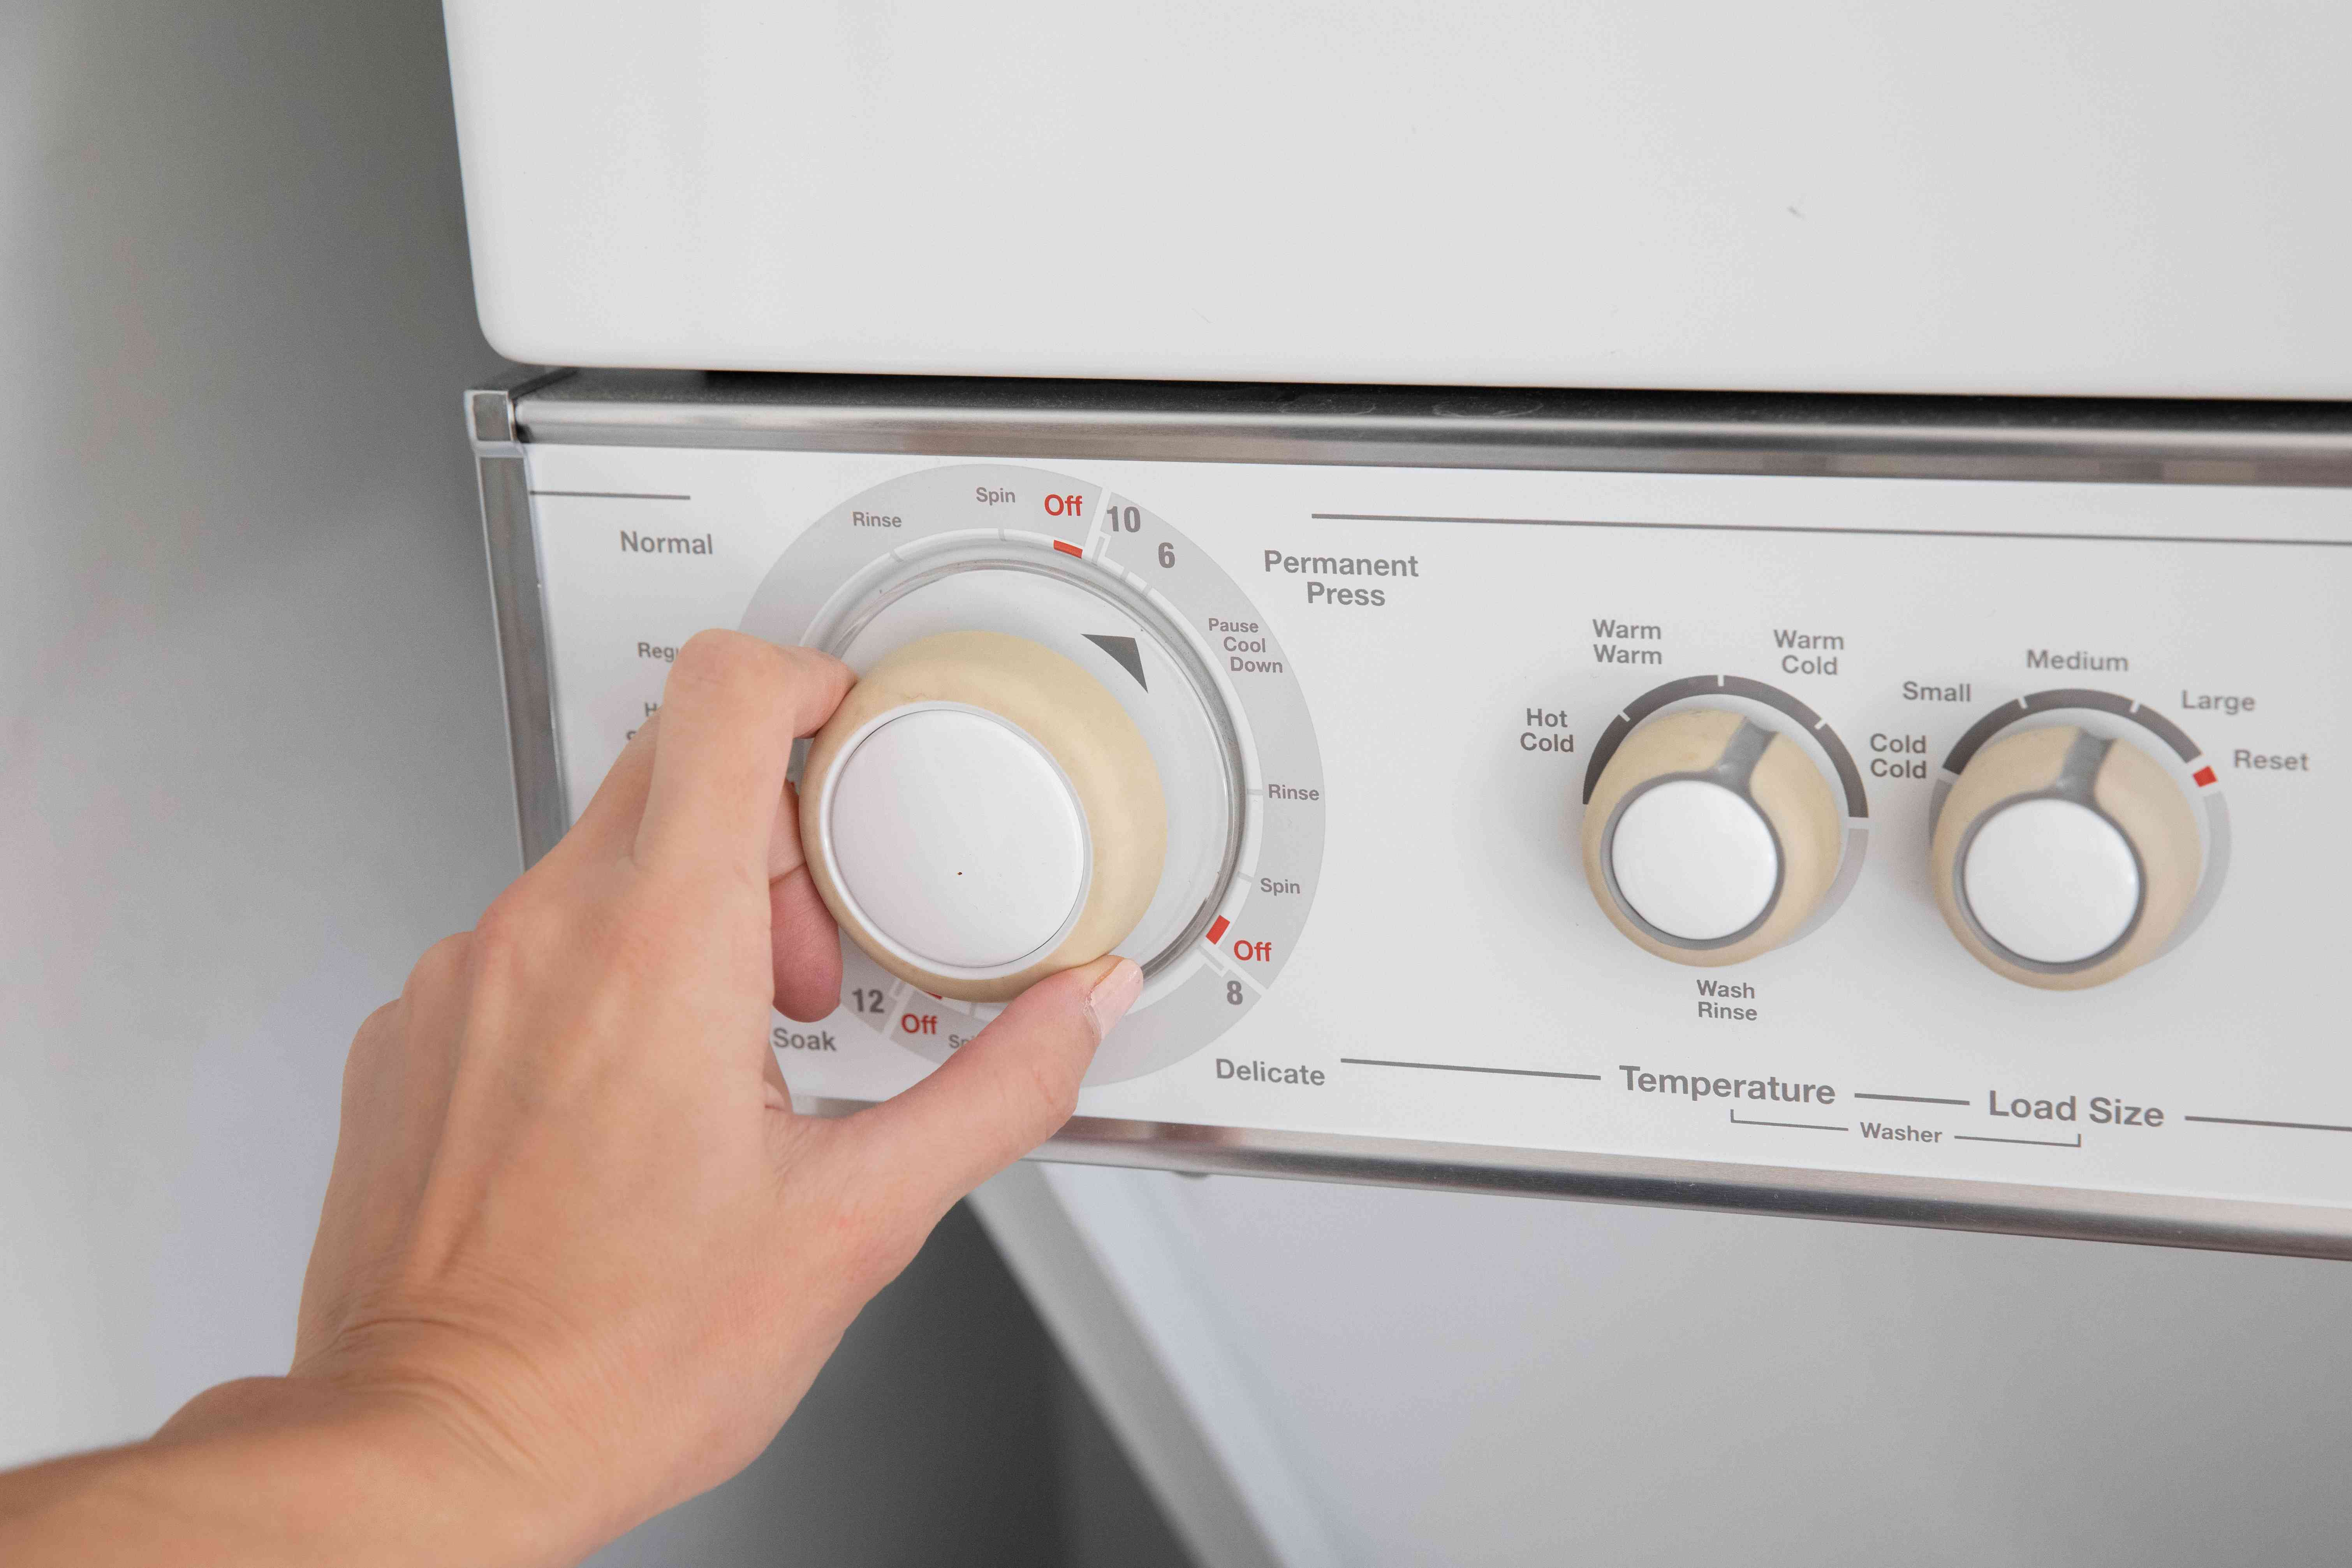 Washing machine set to permanent press for acrylic clothes